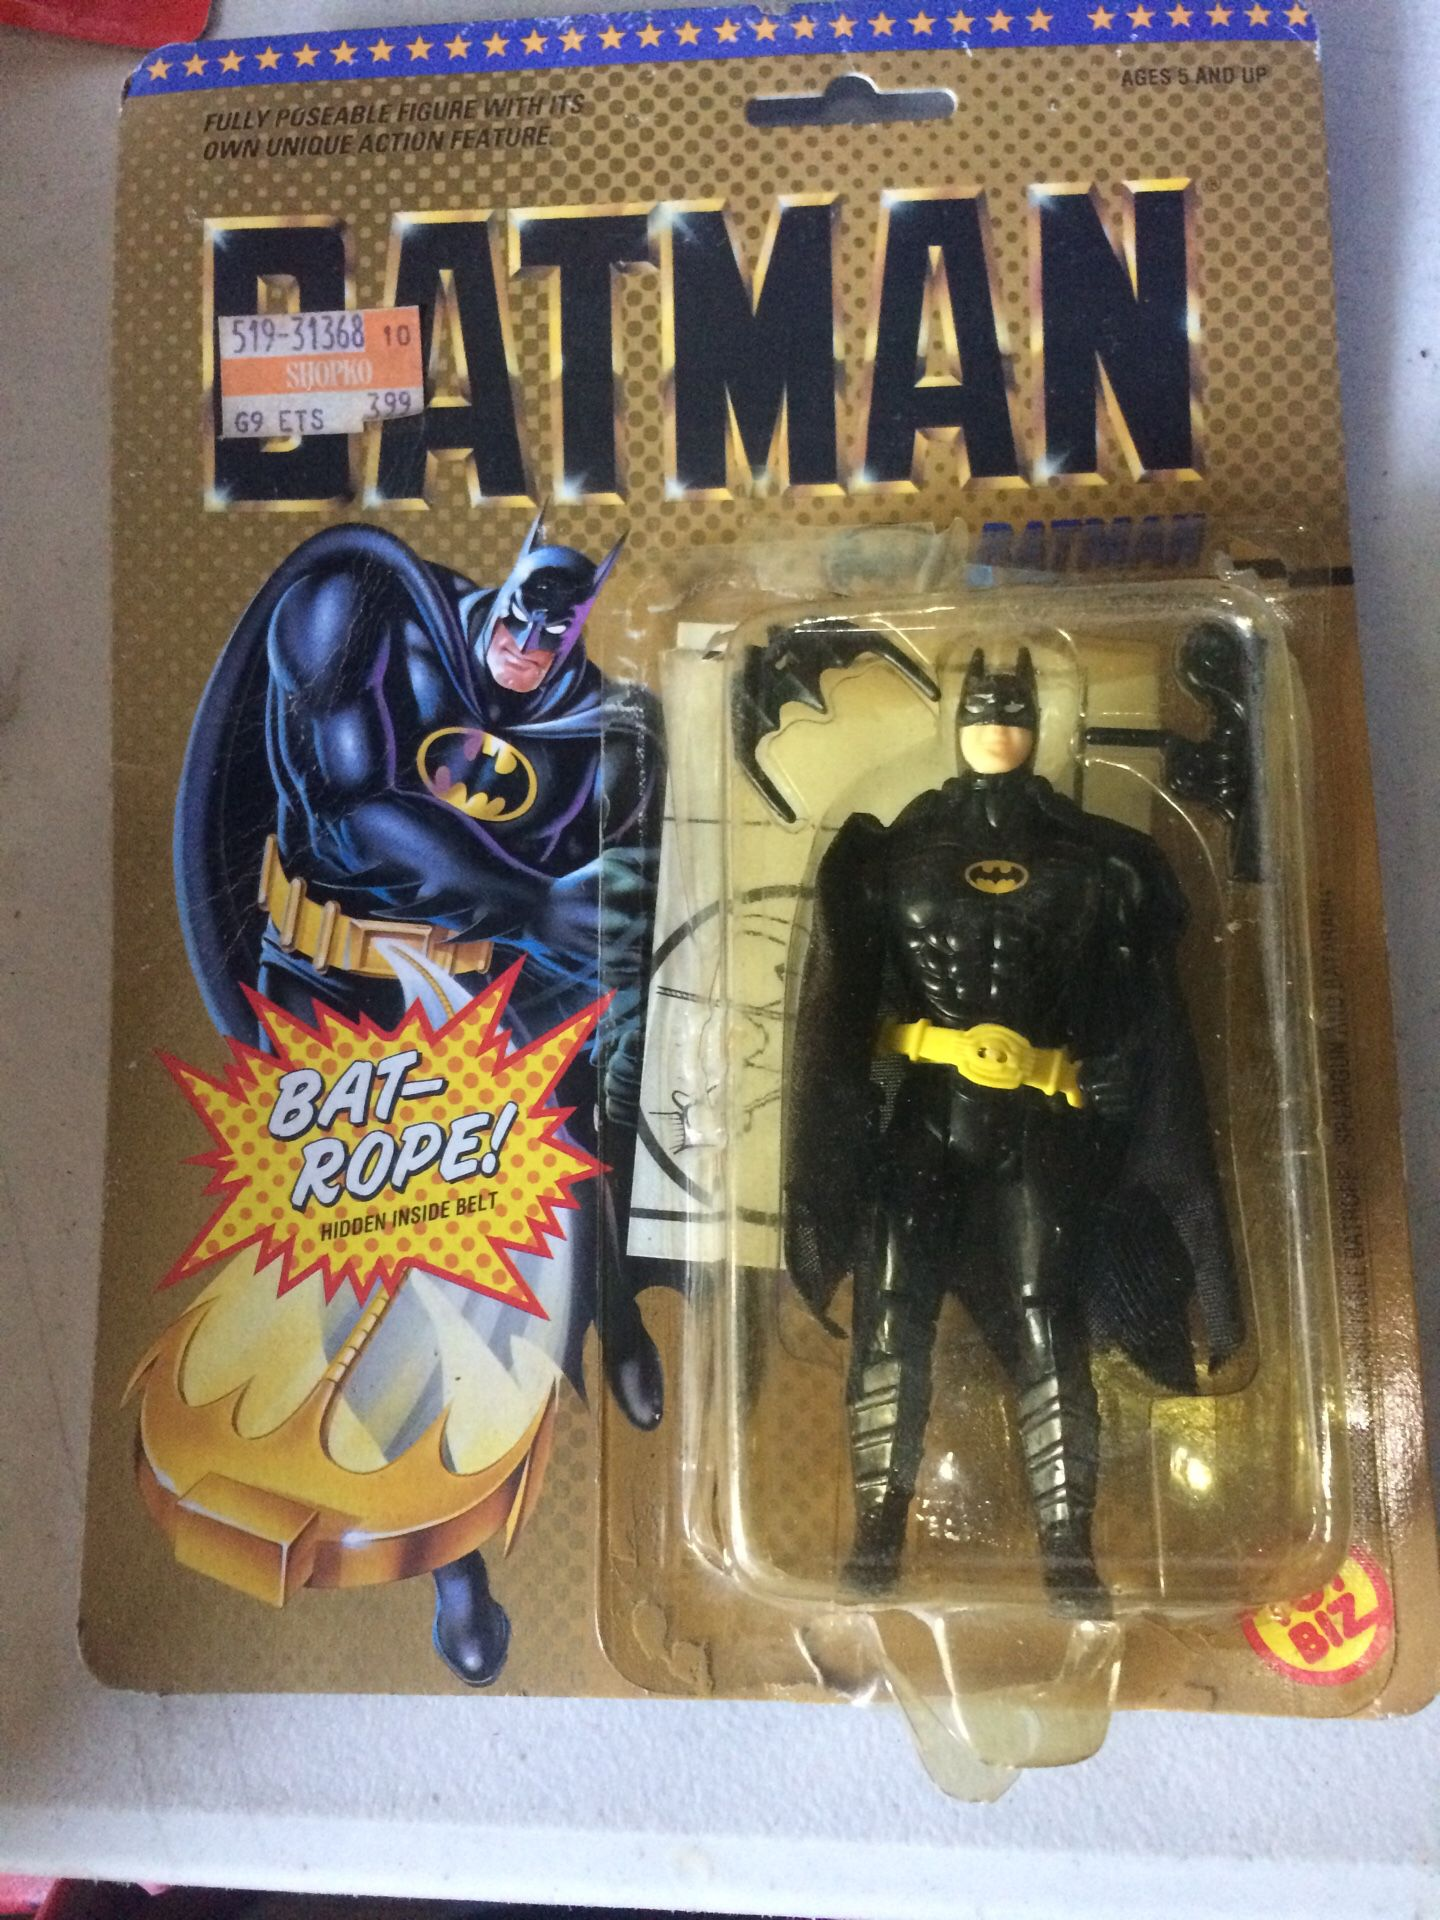 Fullyposeable figure with its own unique action figure feature Batman bat rope hidden inside belt toy biz five and up